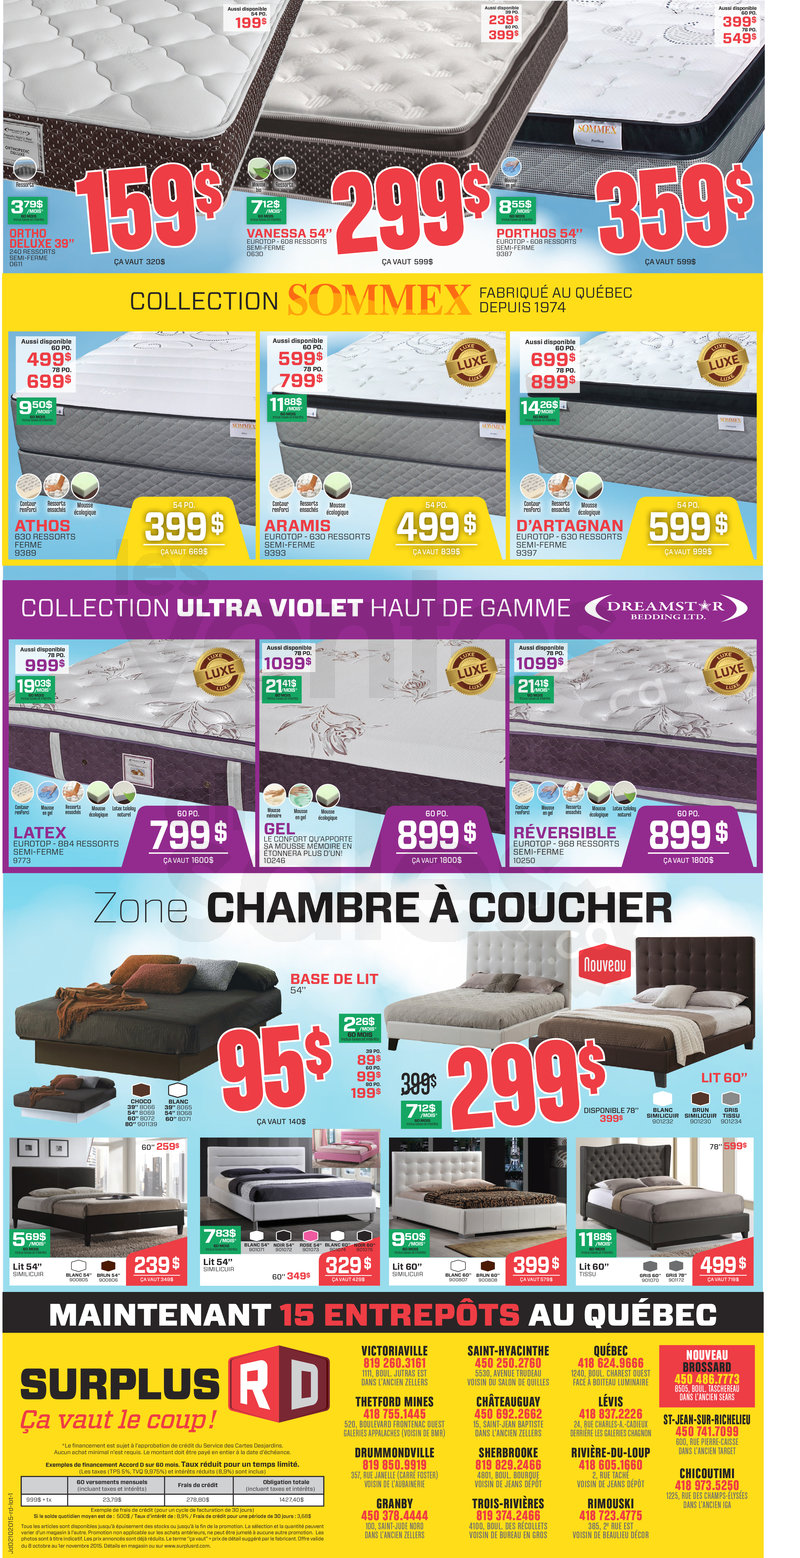 Surplus rd furniture clearance for Club piscine brossard qc